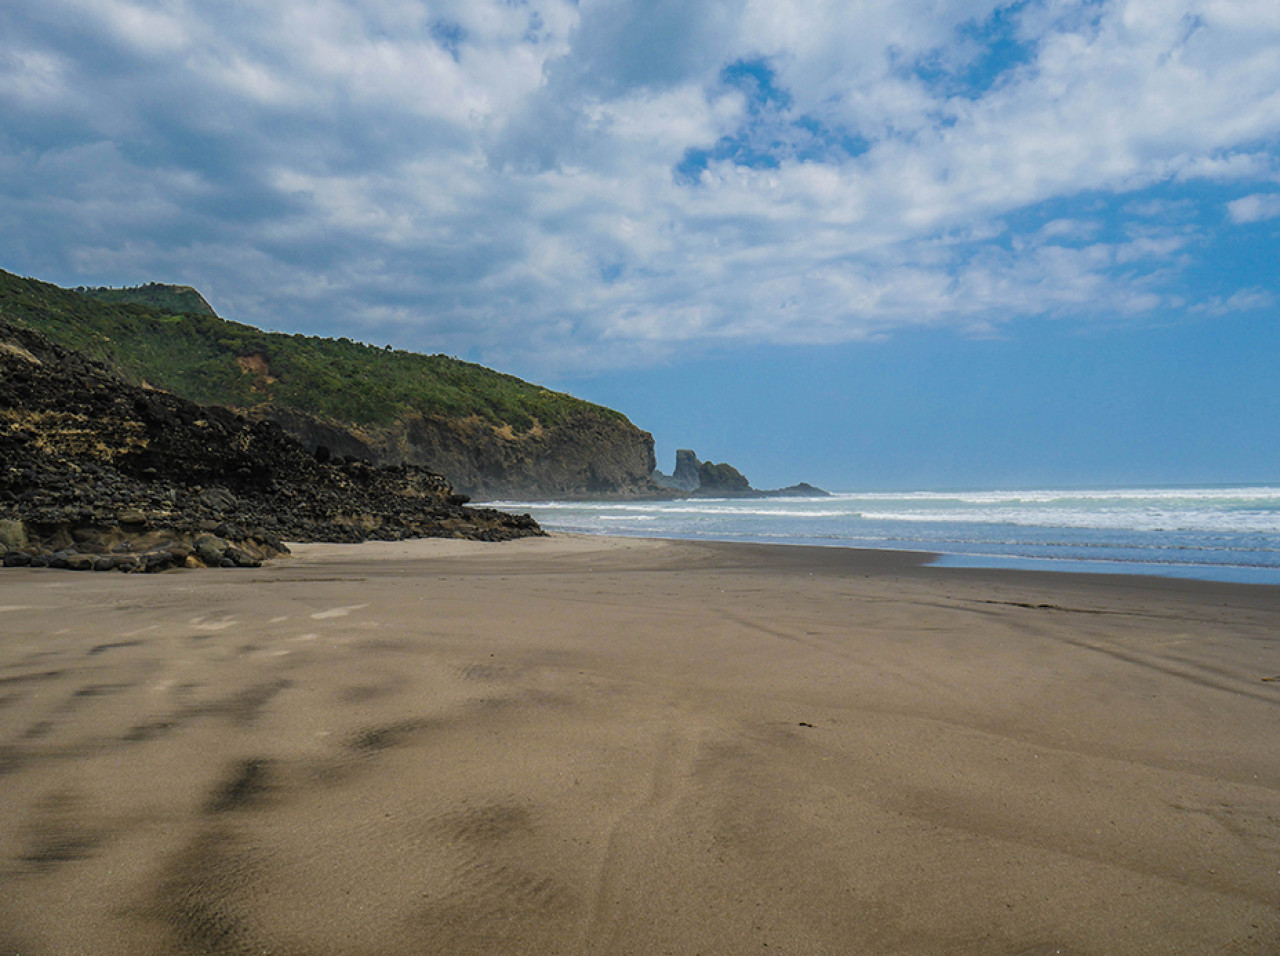 Looking towards the southern end of Bethells Beach.